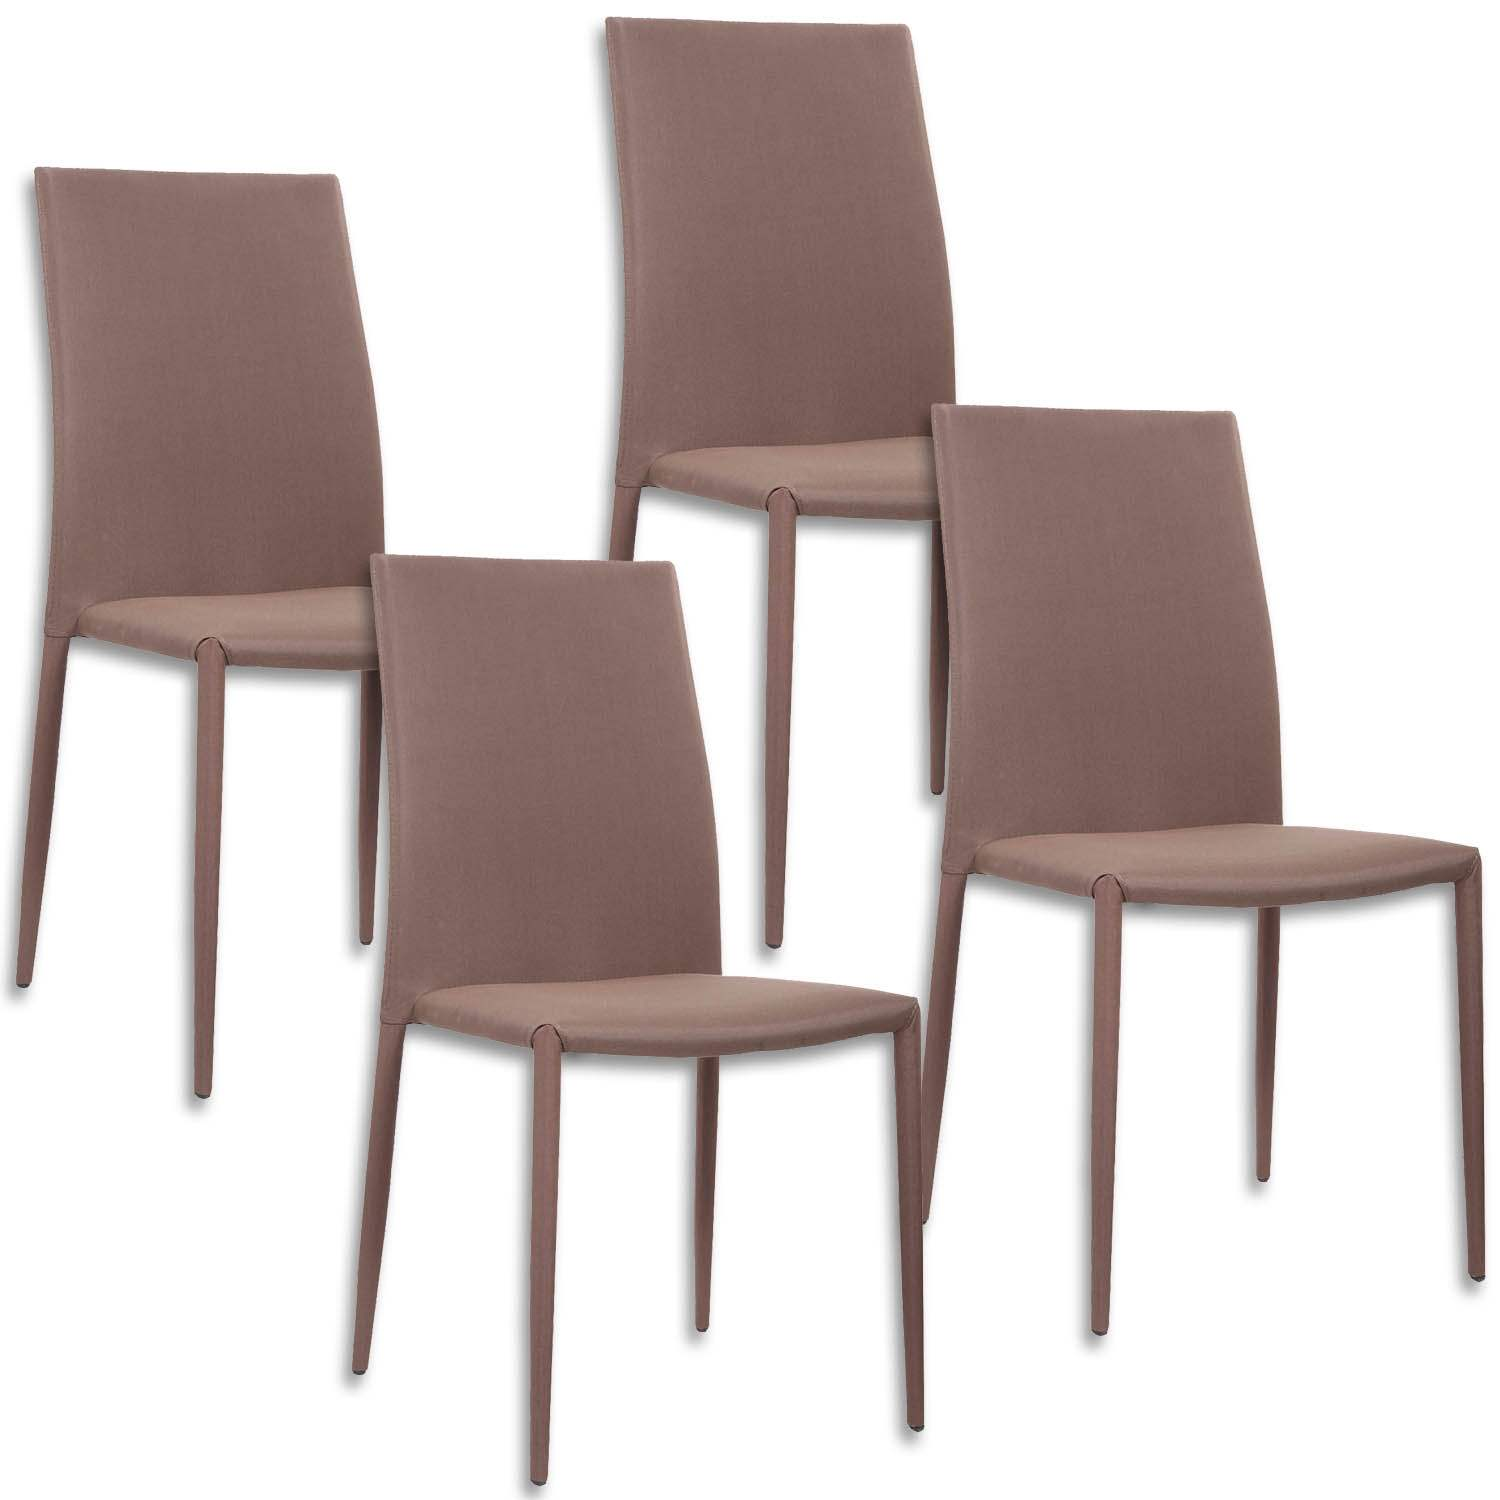 deco in paris lot de 4 chaises marron lola lotx4 marron lola. Black Bedroom Furniture Sets. Home Design Ideas